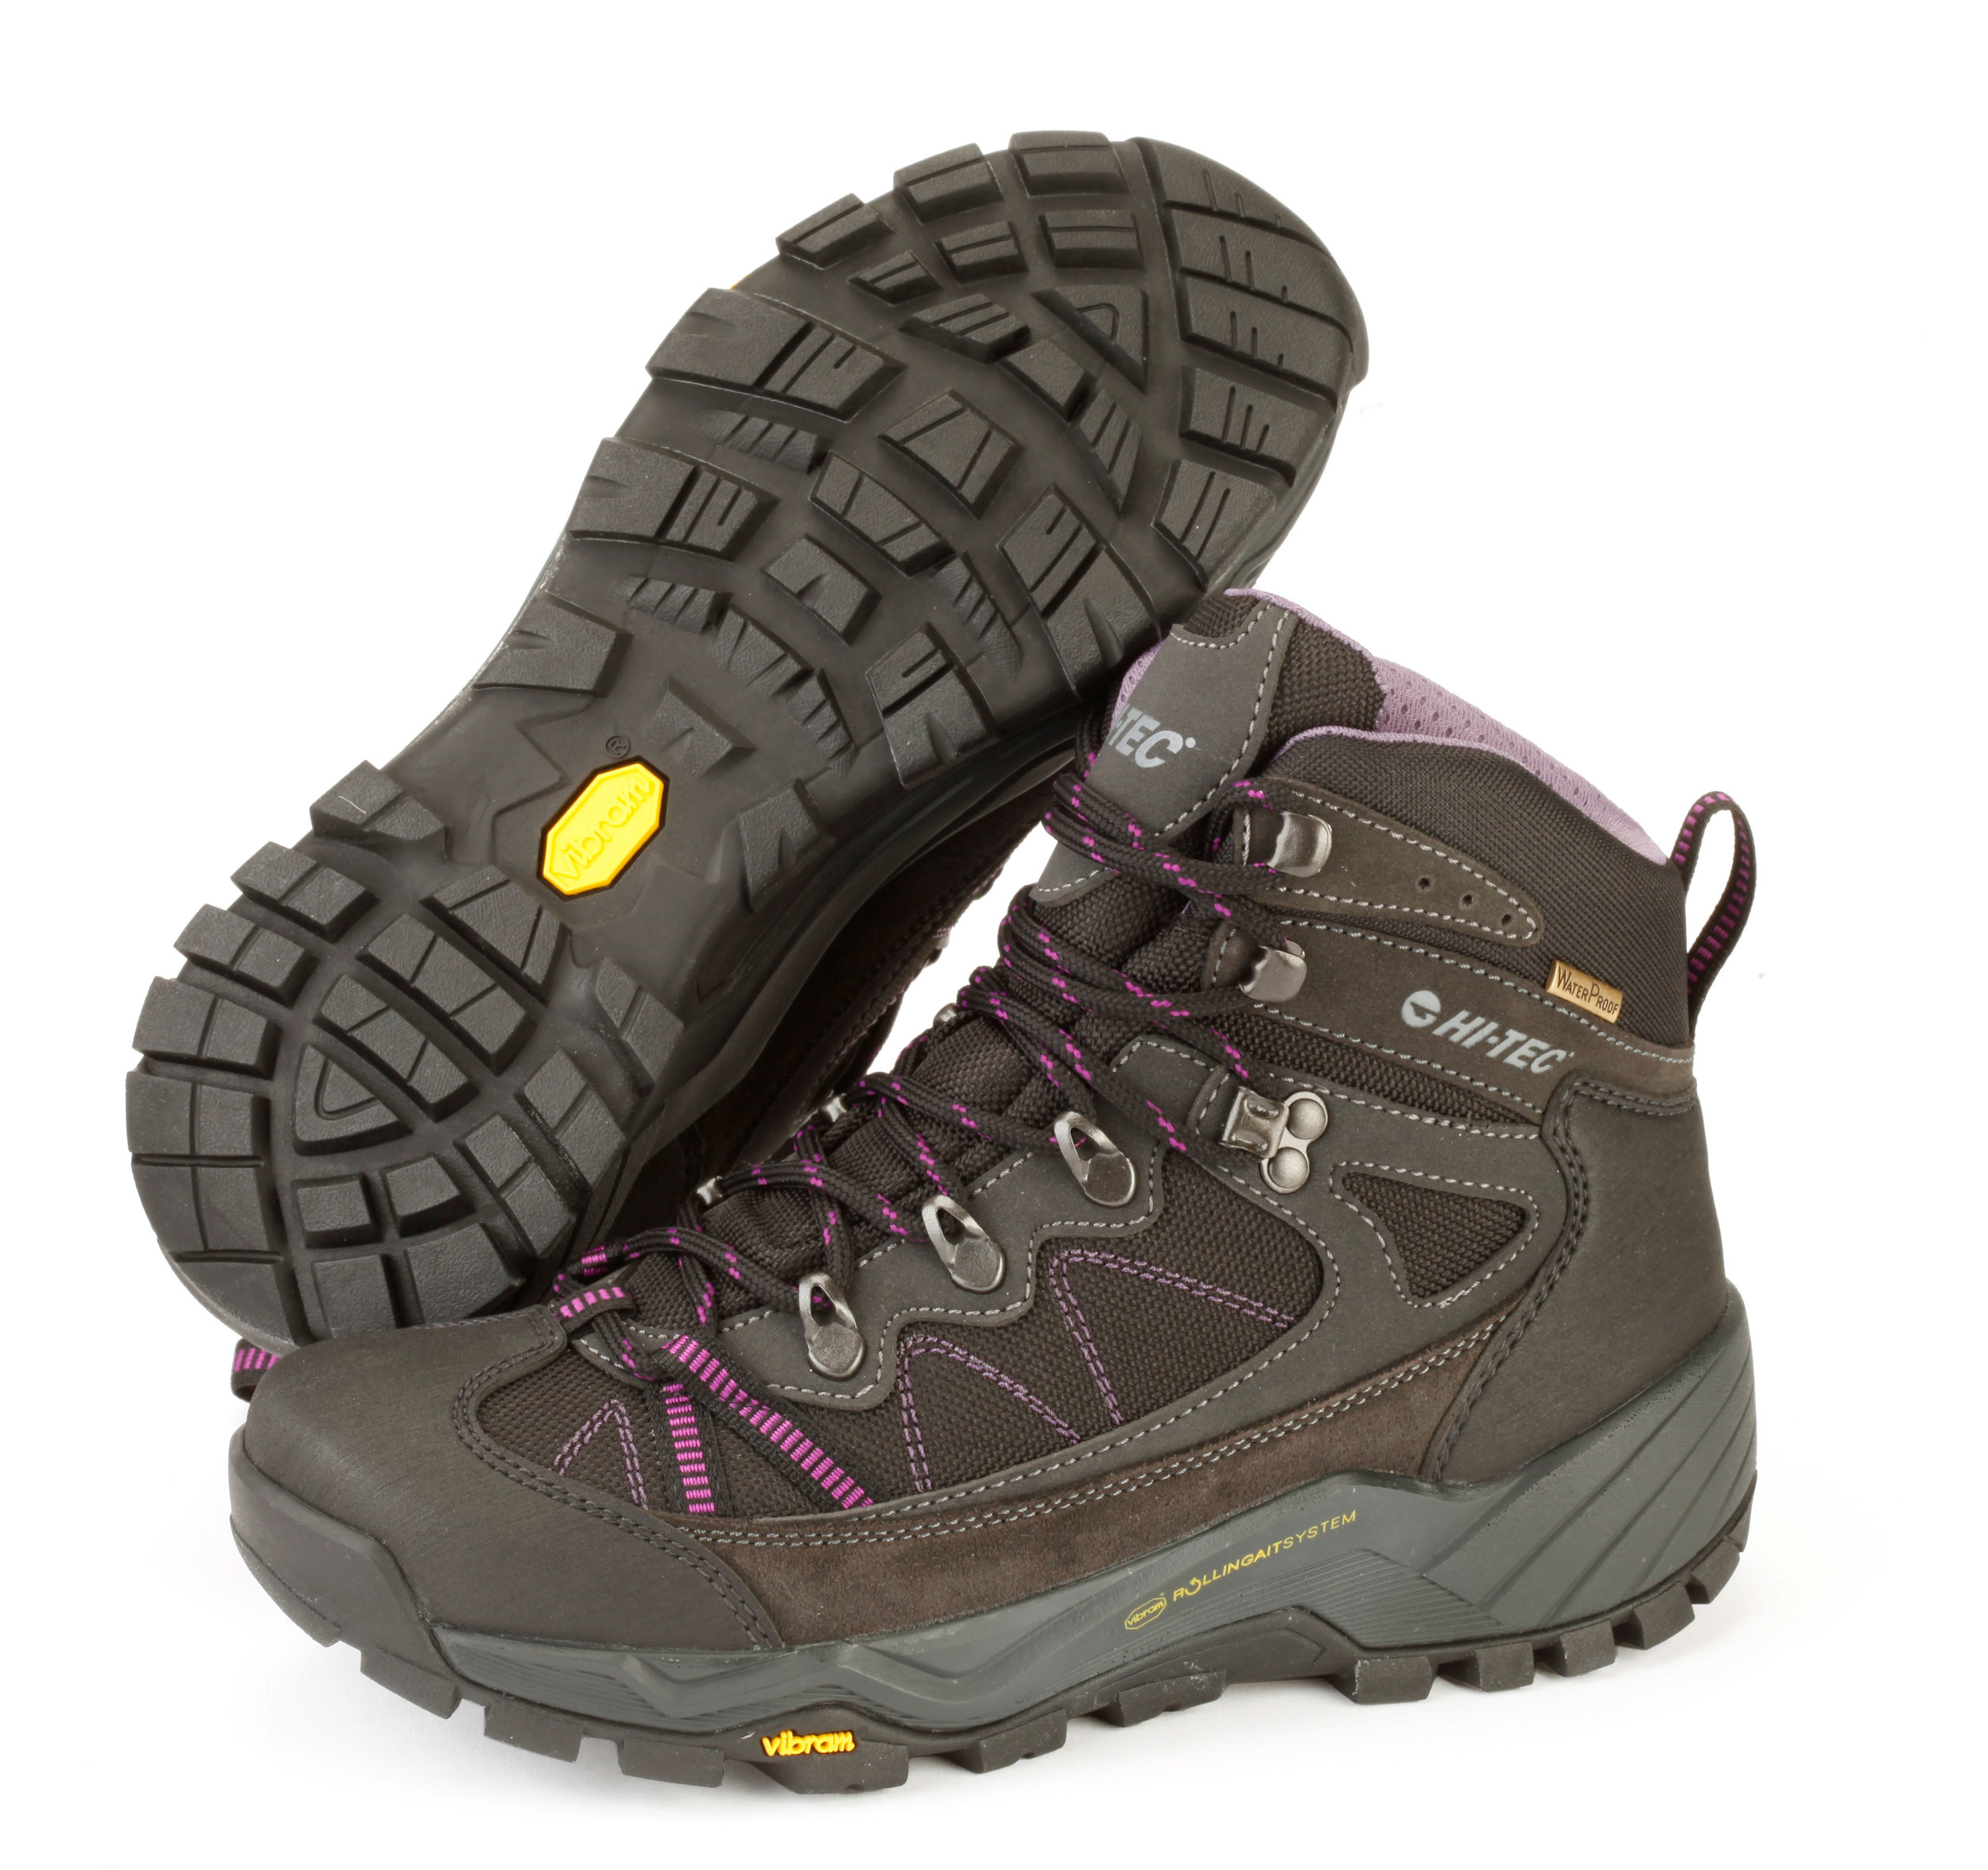 8dd9f4558b1 HI-TEC V-Lite Altitude Pro-Lite RGS walking boots — Live for the ...